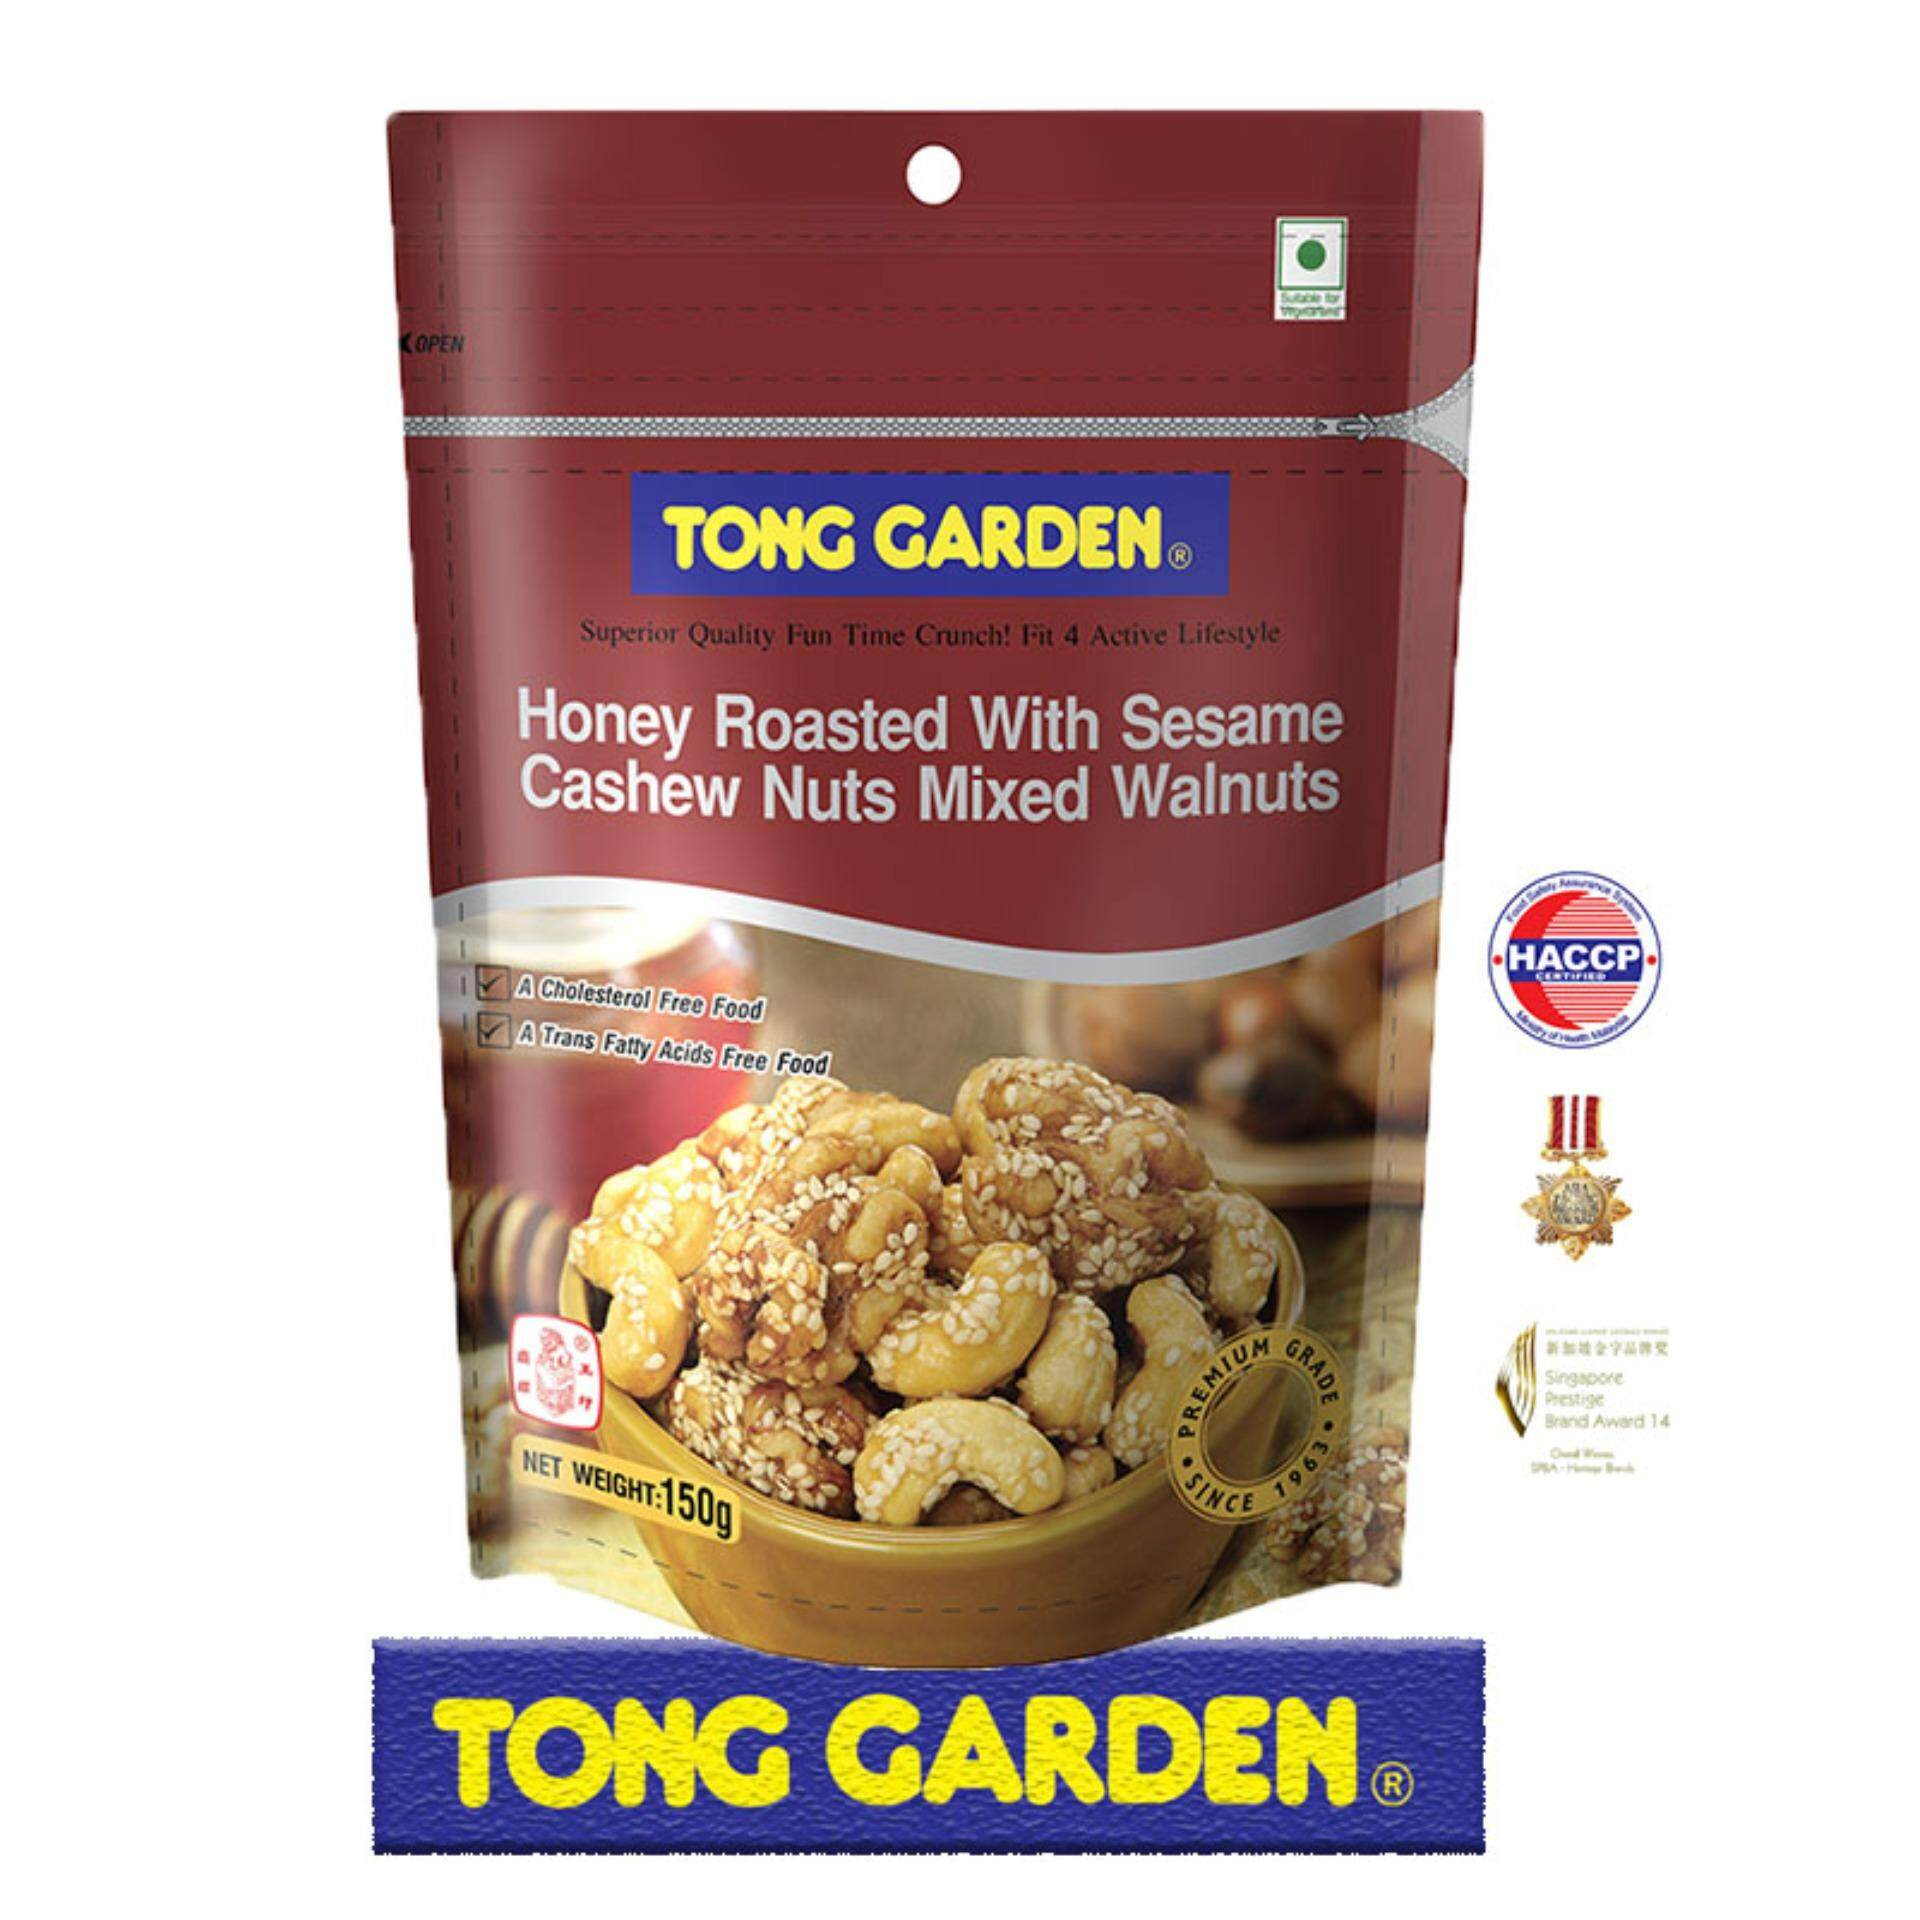 Tong Garden Cashew Nuts Mixed Walnuts Honey Roasted With Sesame 150G